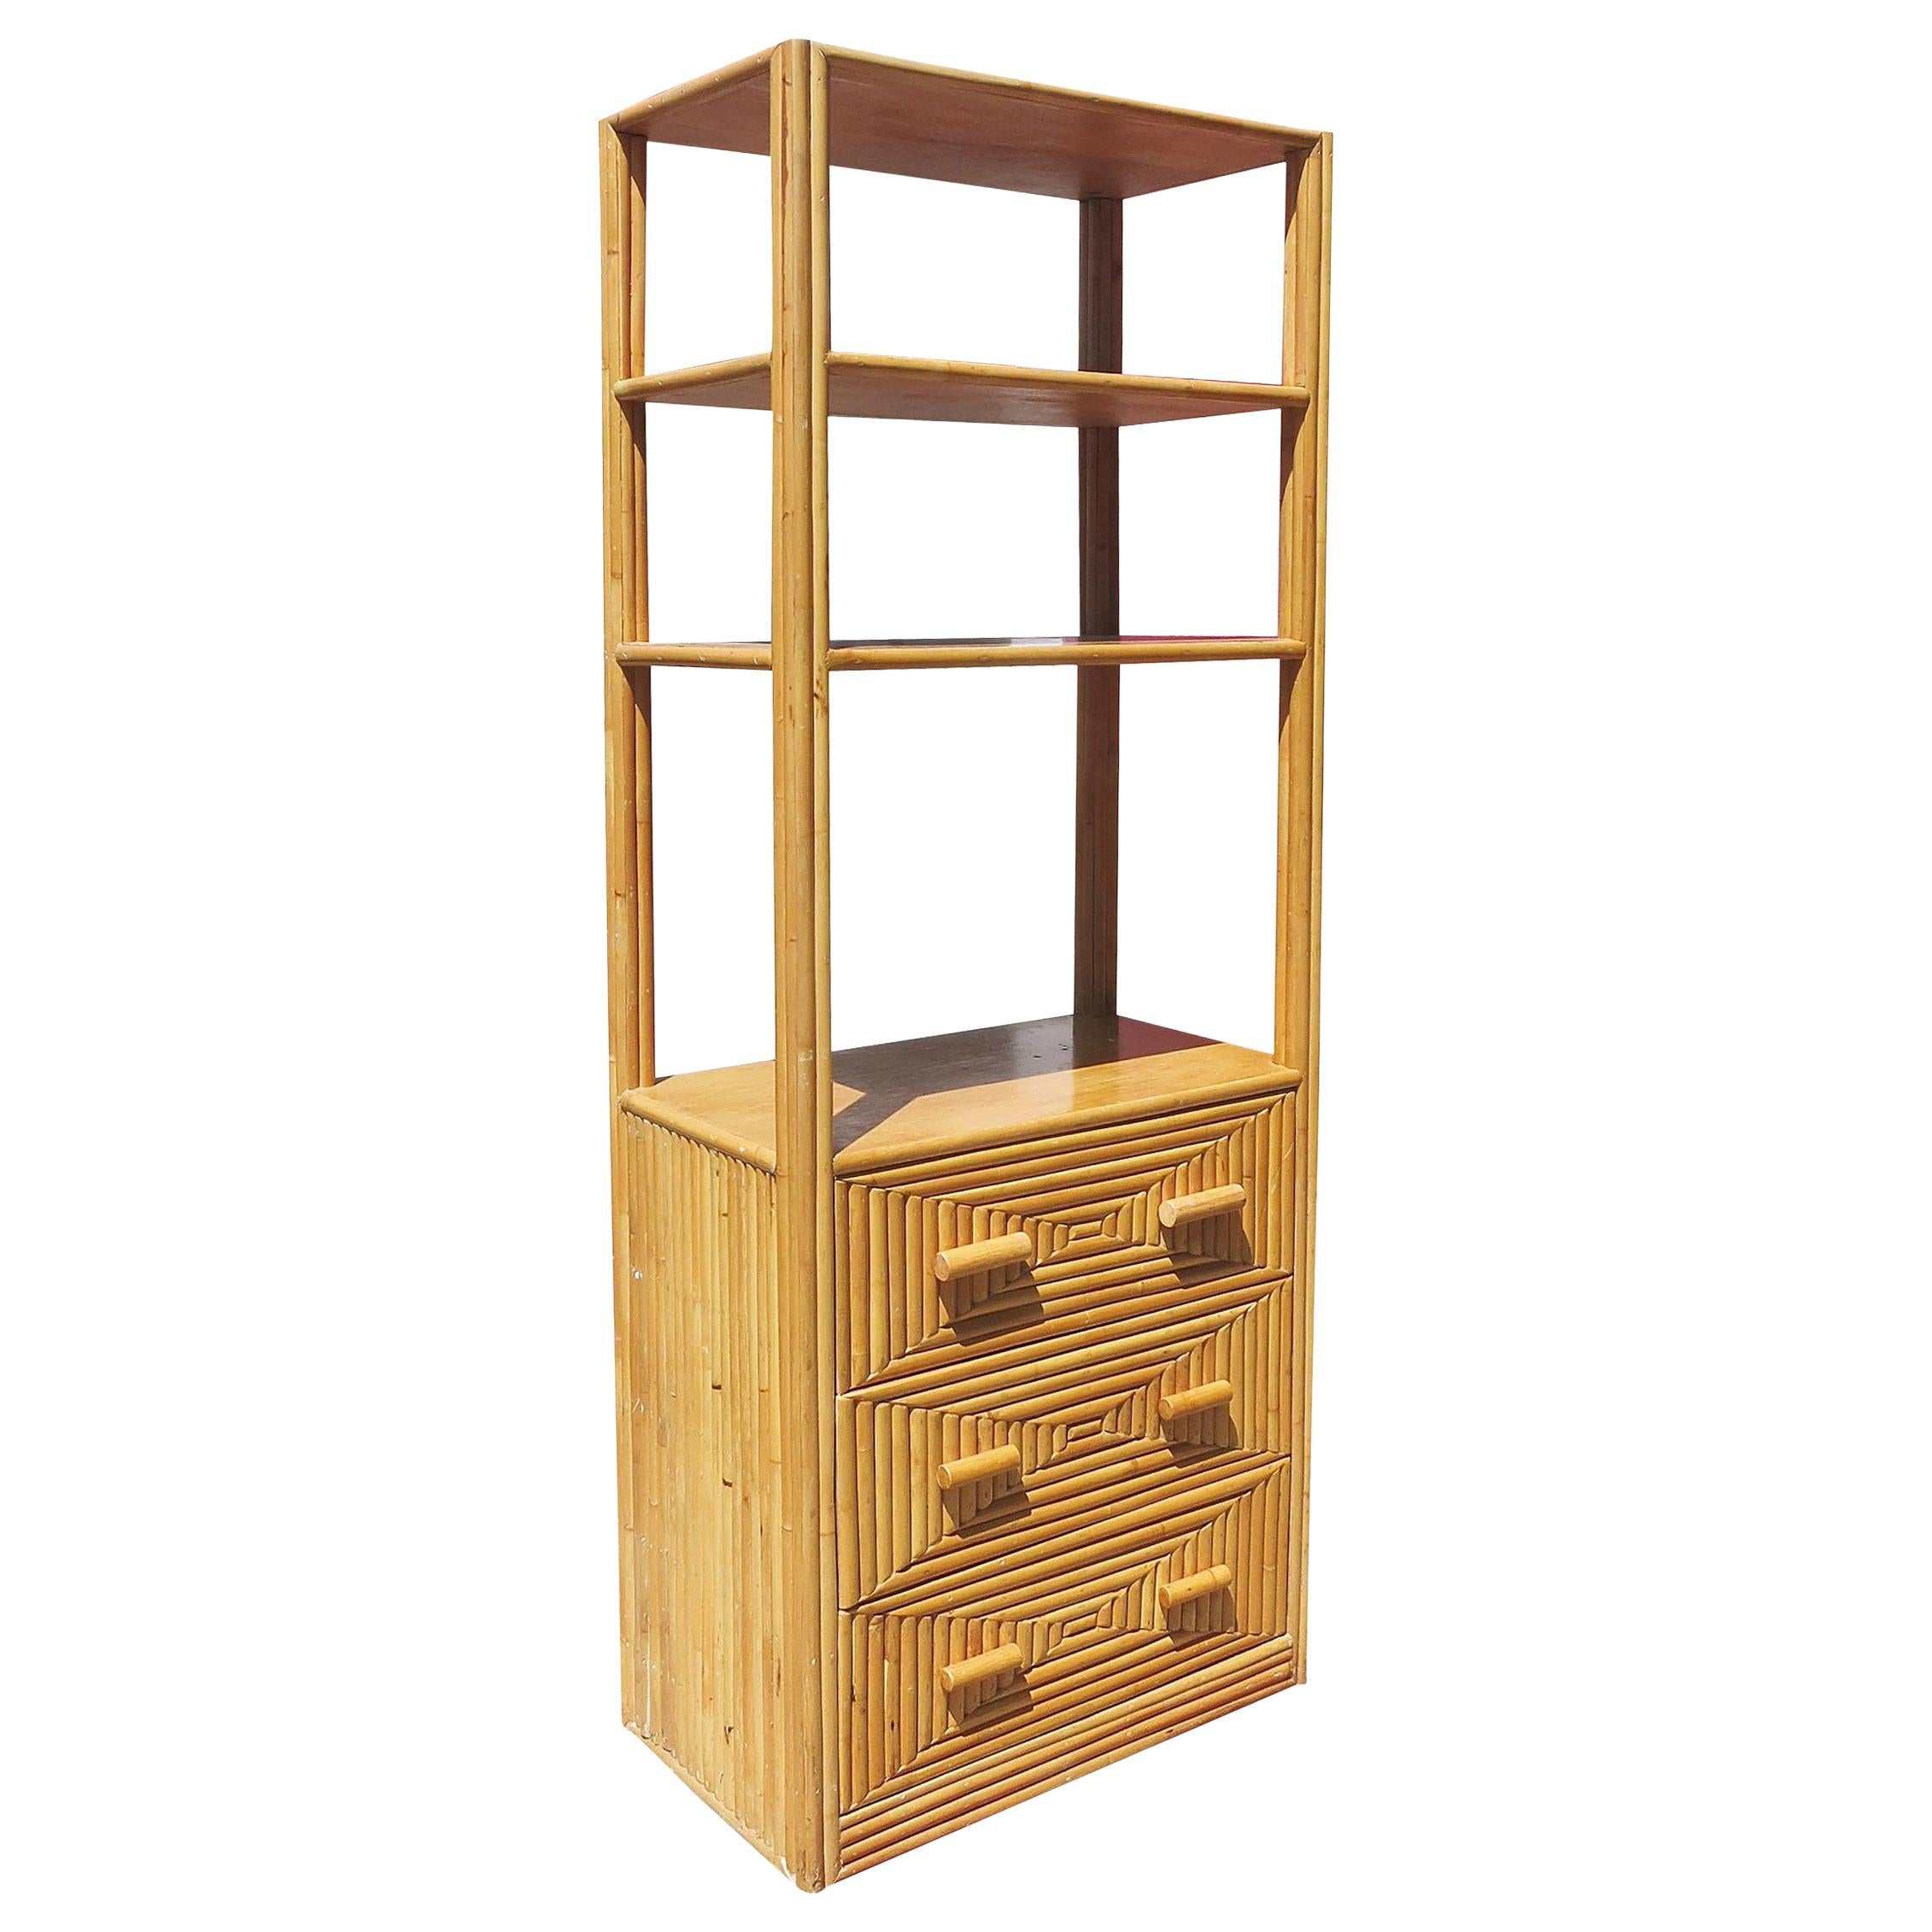 Restored Midcentury Rattan and Mahogany Display Cabinet with Drawers